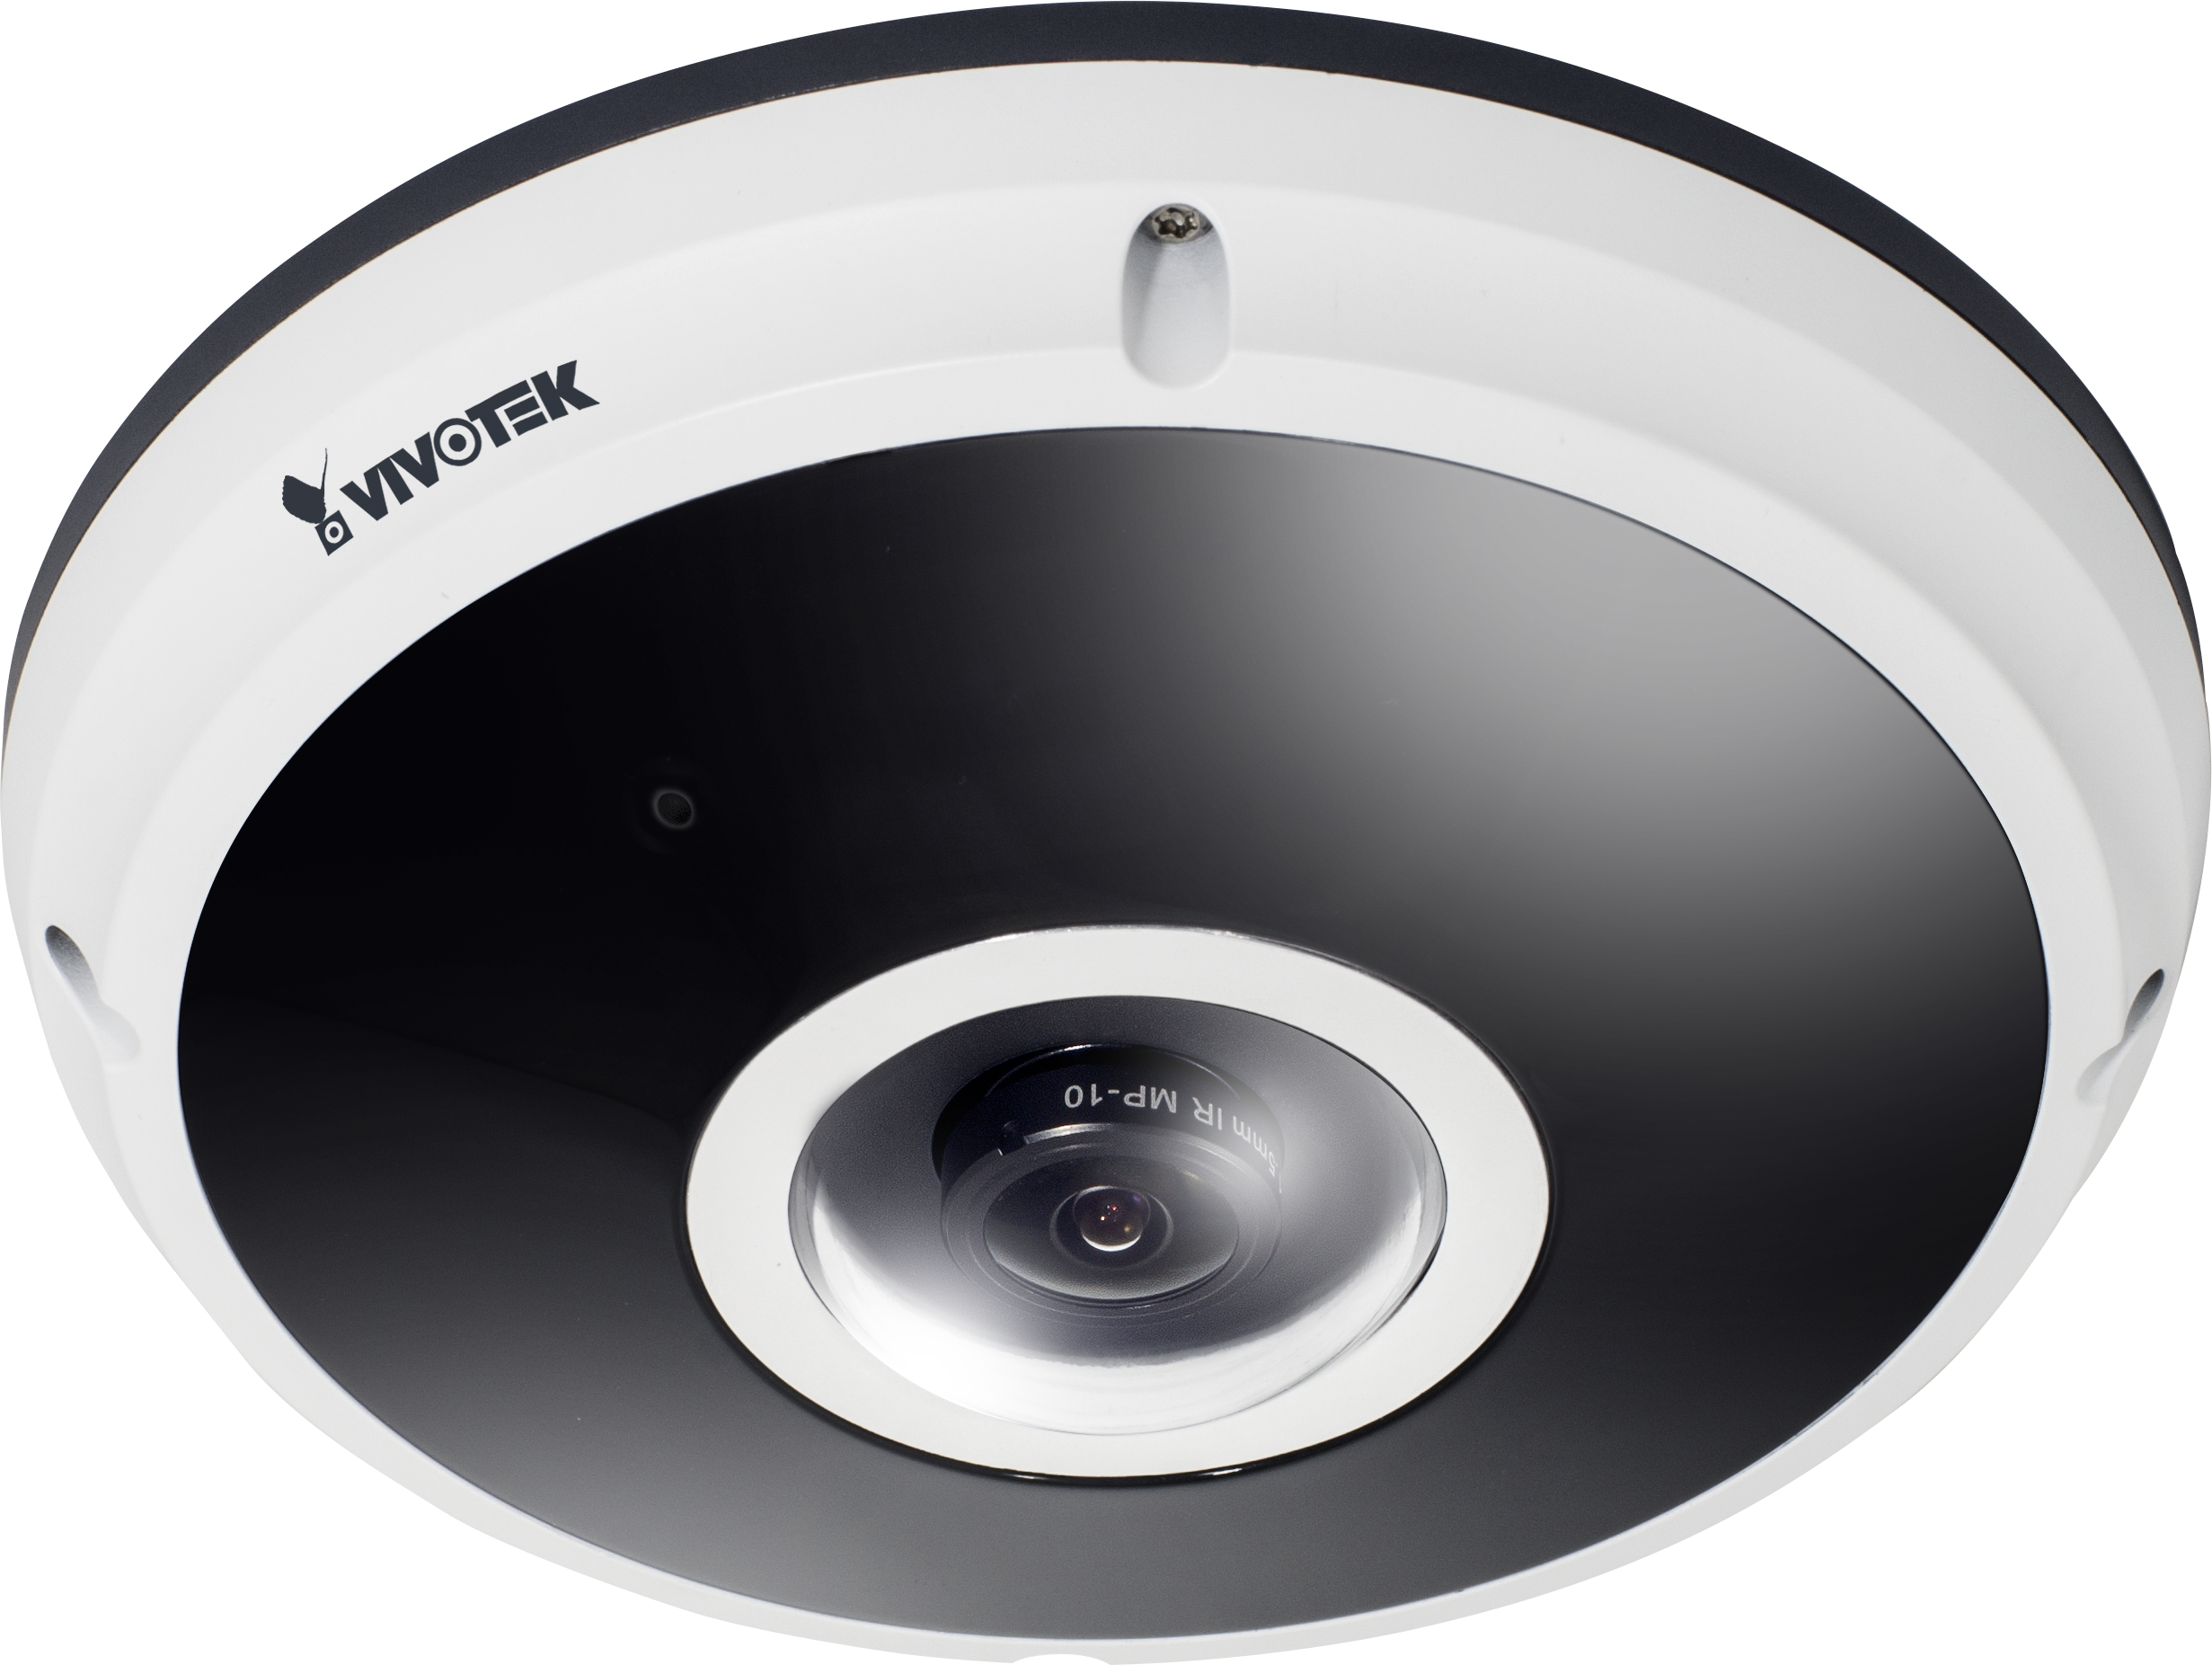 IP Surveillance Cameras from Vivotek